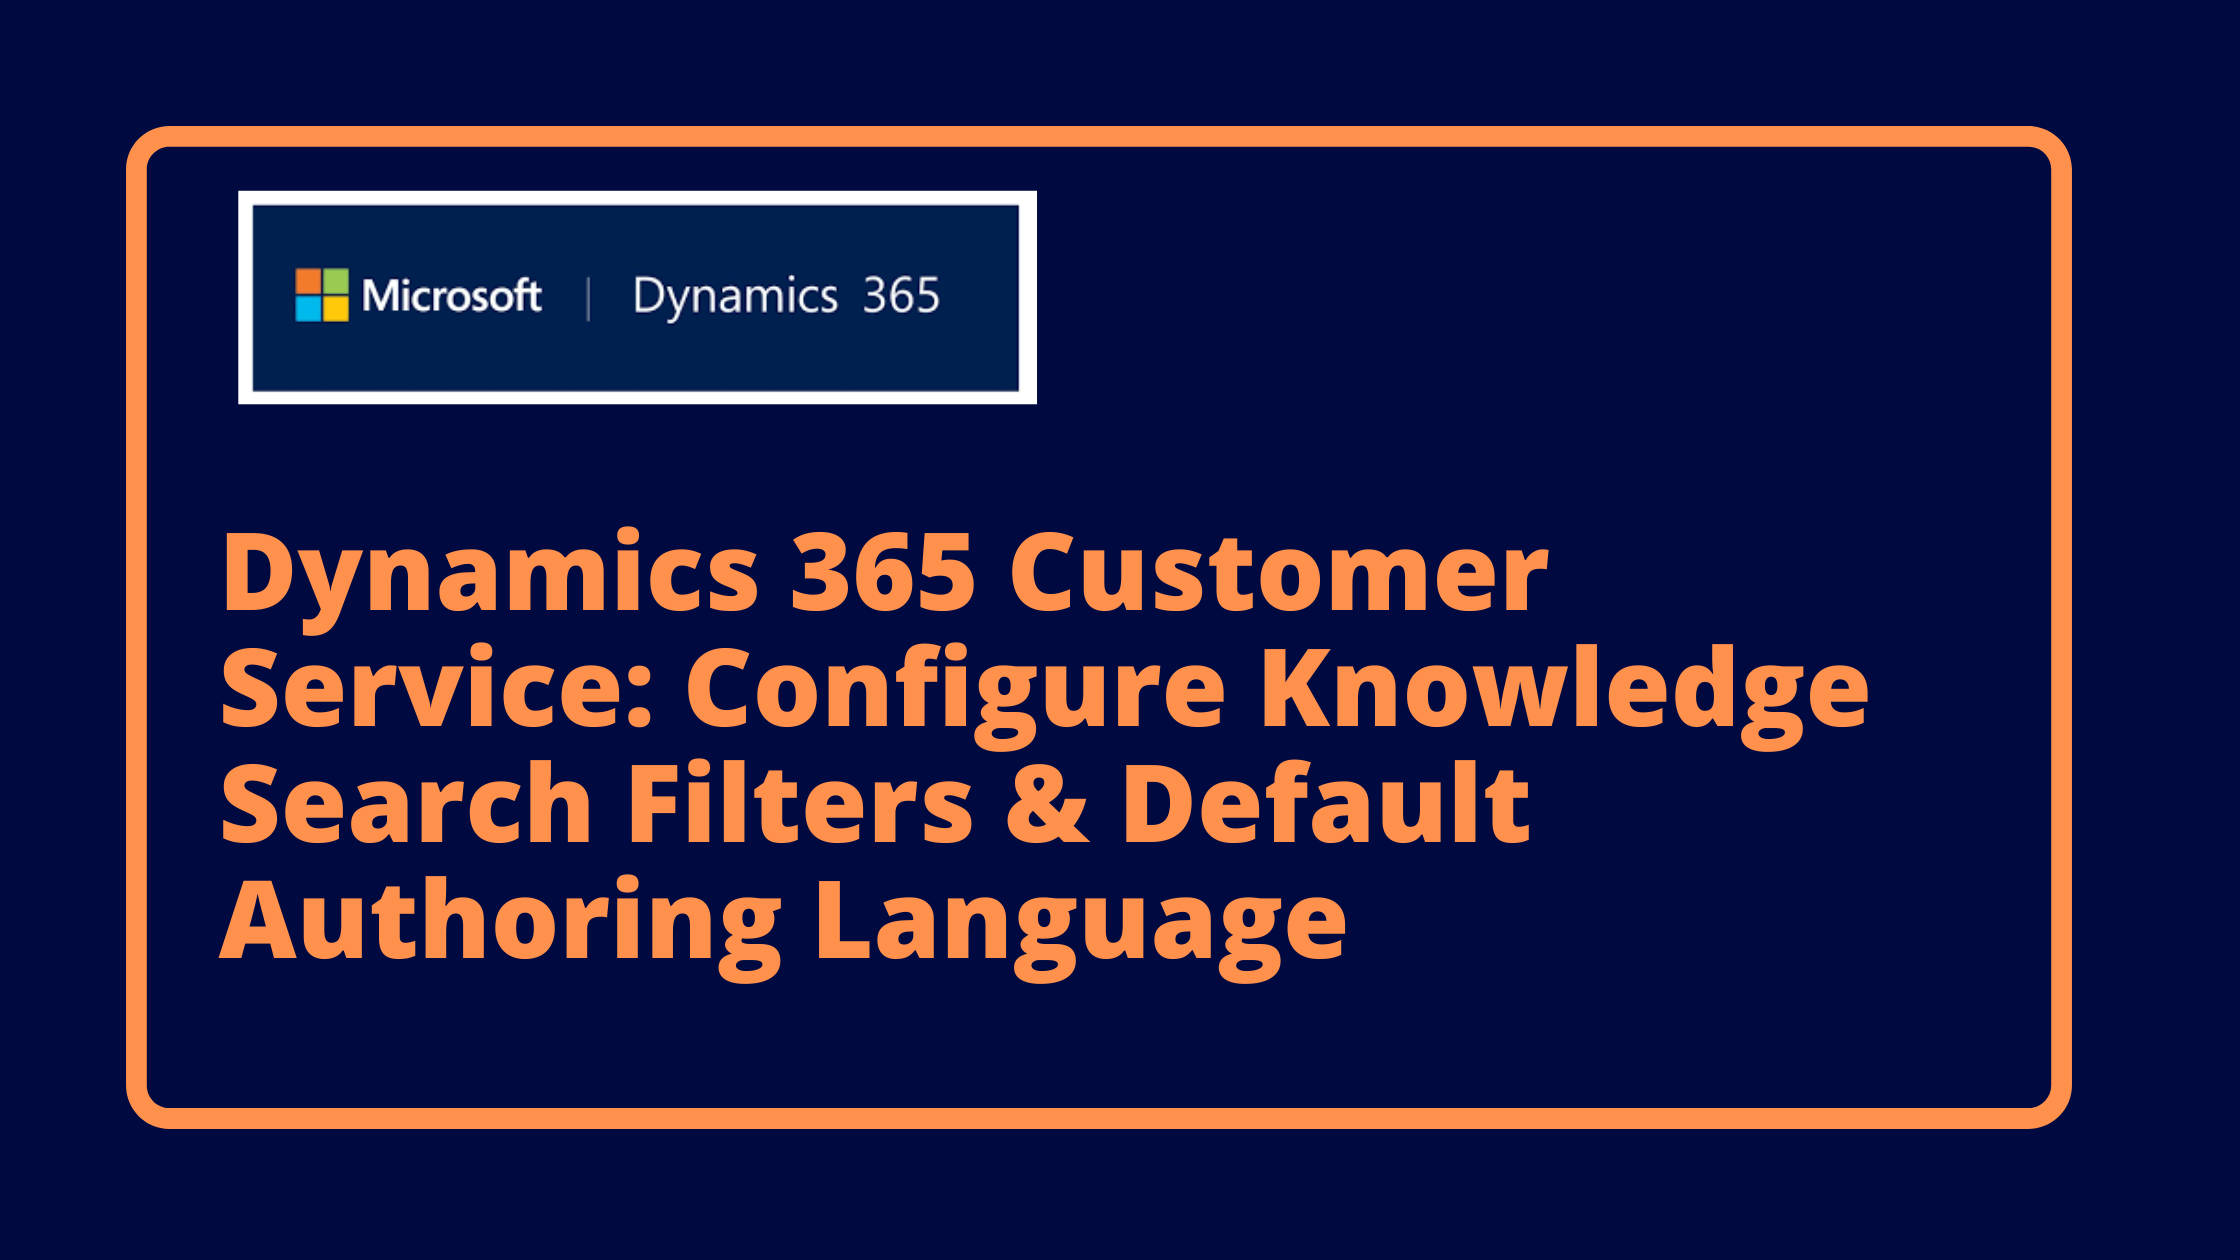 Dynamics 365 Customer Service: Configure Knowledge Search Filters & Default Authoring Language